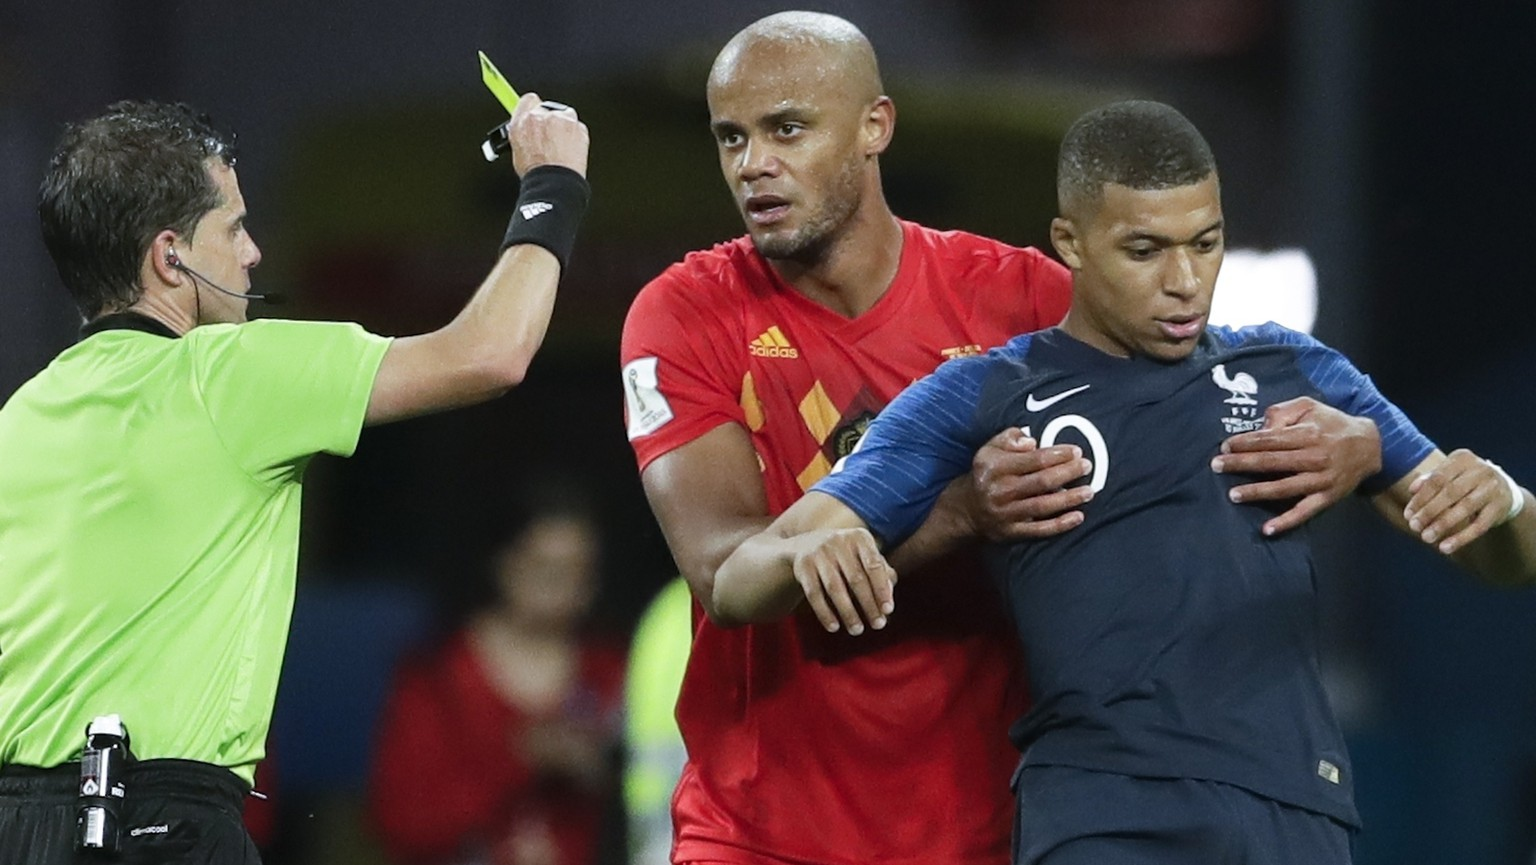 Referee Andres Cunha from Uruguay shows a yellow card to France's Kylian Mbappe during the semifinal match between France and Belgium at the 2018 soccer World Cup in the St. Petersburg Stadium, in St. Petersburg, Russia, Tuesday, July 10, 2018. (AP Photo/Petr David Josek)